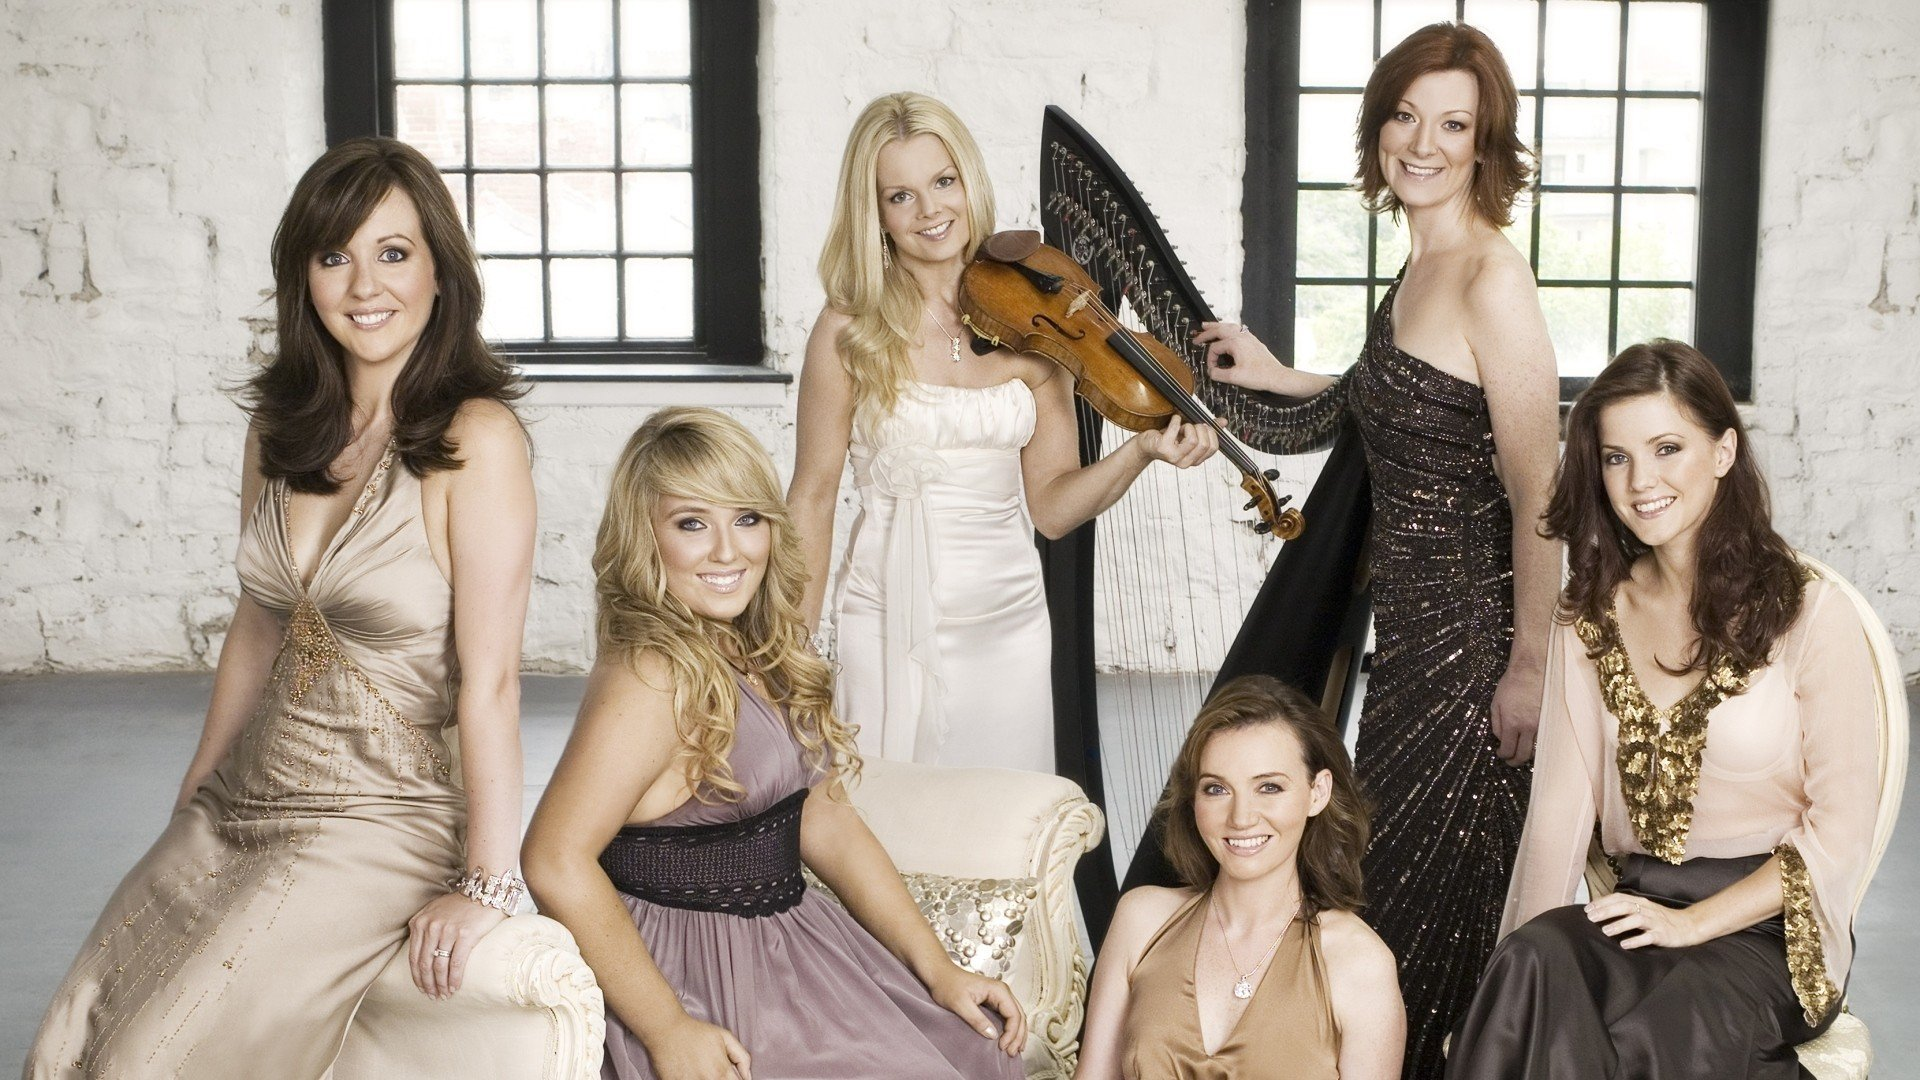 http://ticketcrusader.com/wp-content/uploads/2015/06/celtic-woman-5347b12995392.jpg